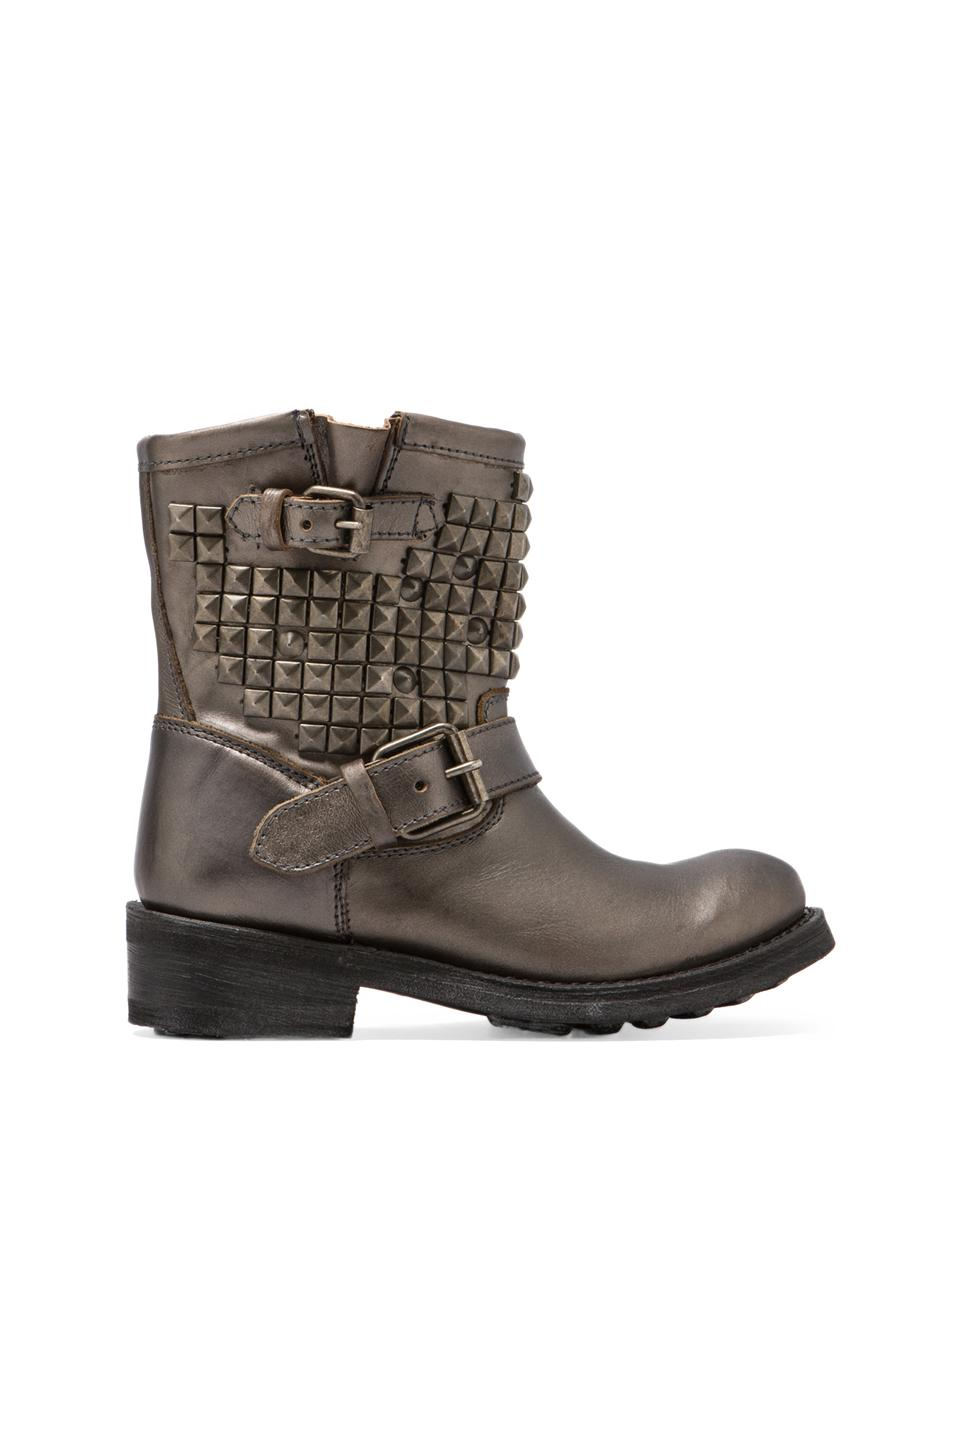 Ash Titan Boot in Piombo